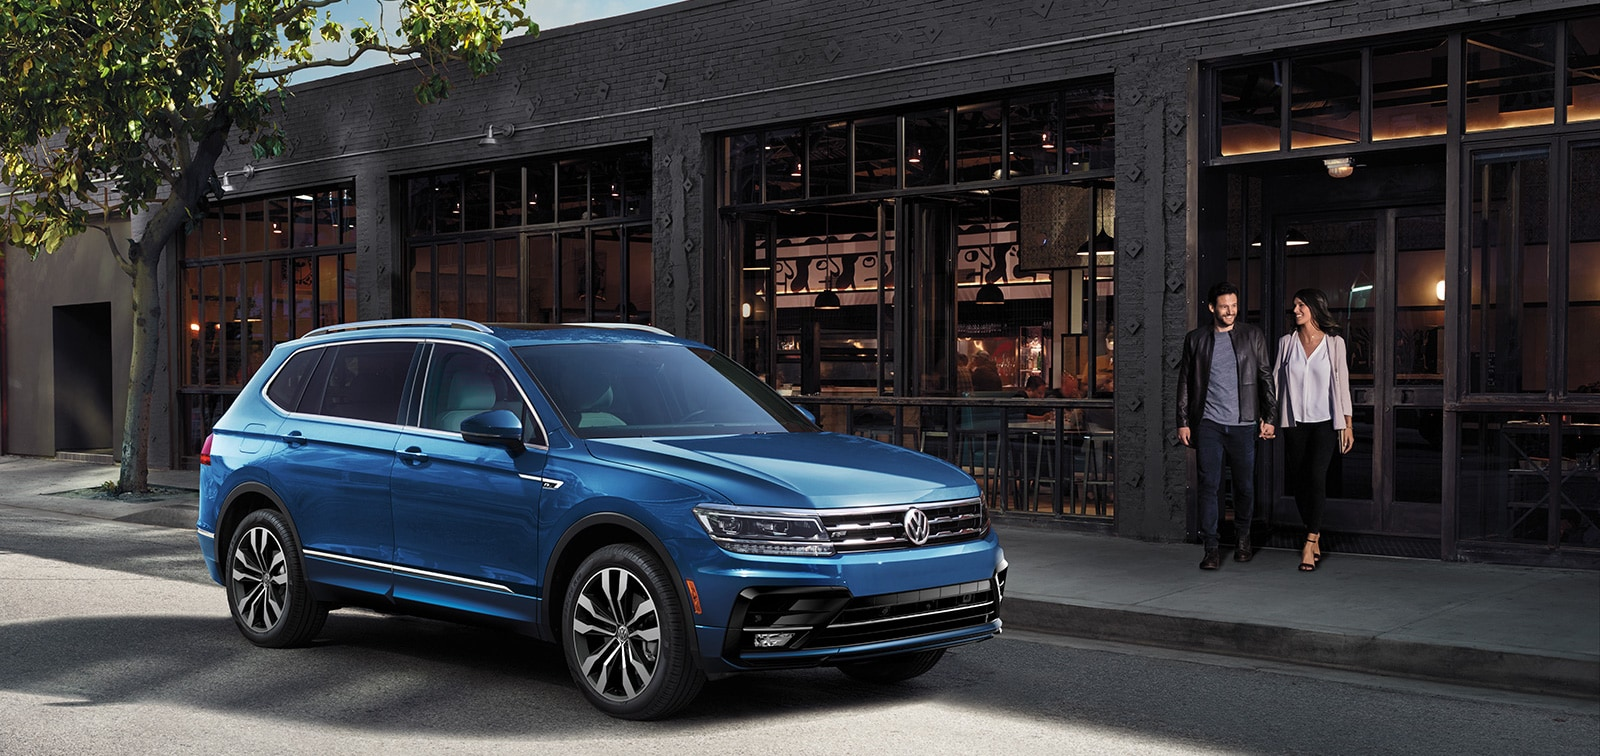 2020 Volkswagen Tiguan warranty coverage vs the competition at Boise VW dealership